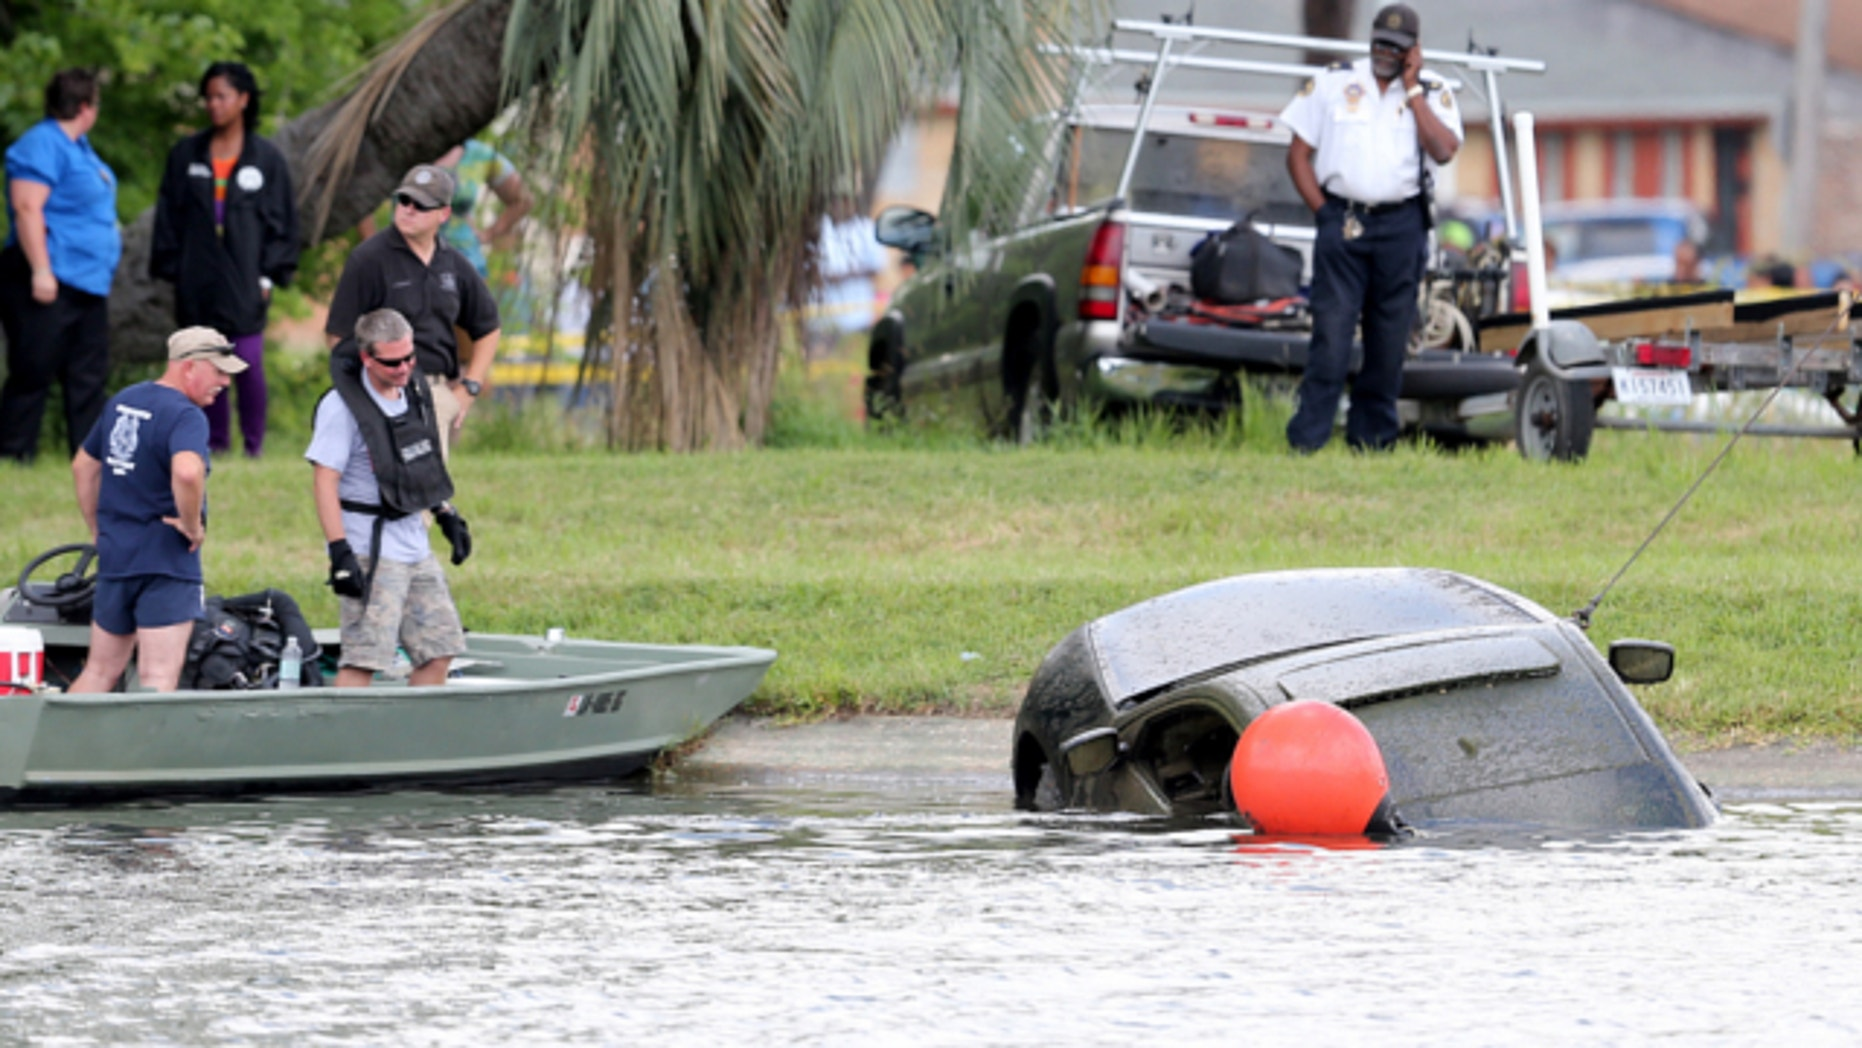 June 8, 2013: The Honda Accord belonging to teacher Terrilynn Monette, who has been missing since leaving a nearby bar in early March, is pulled from Bayou St. John by the Harrison Avenue Bridge in New Orleans.